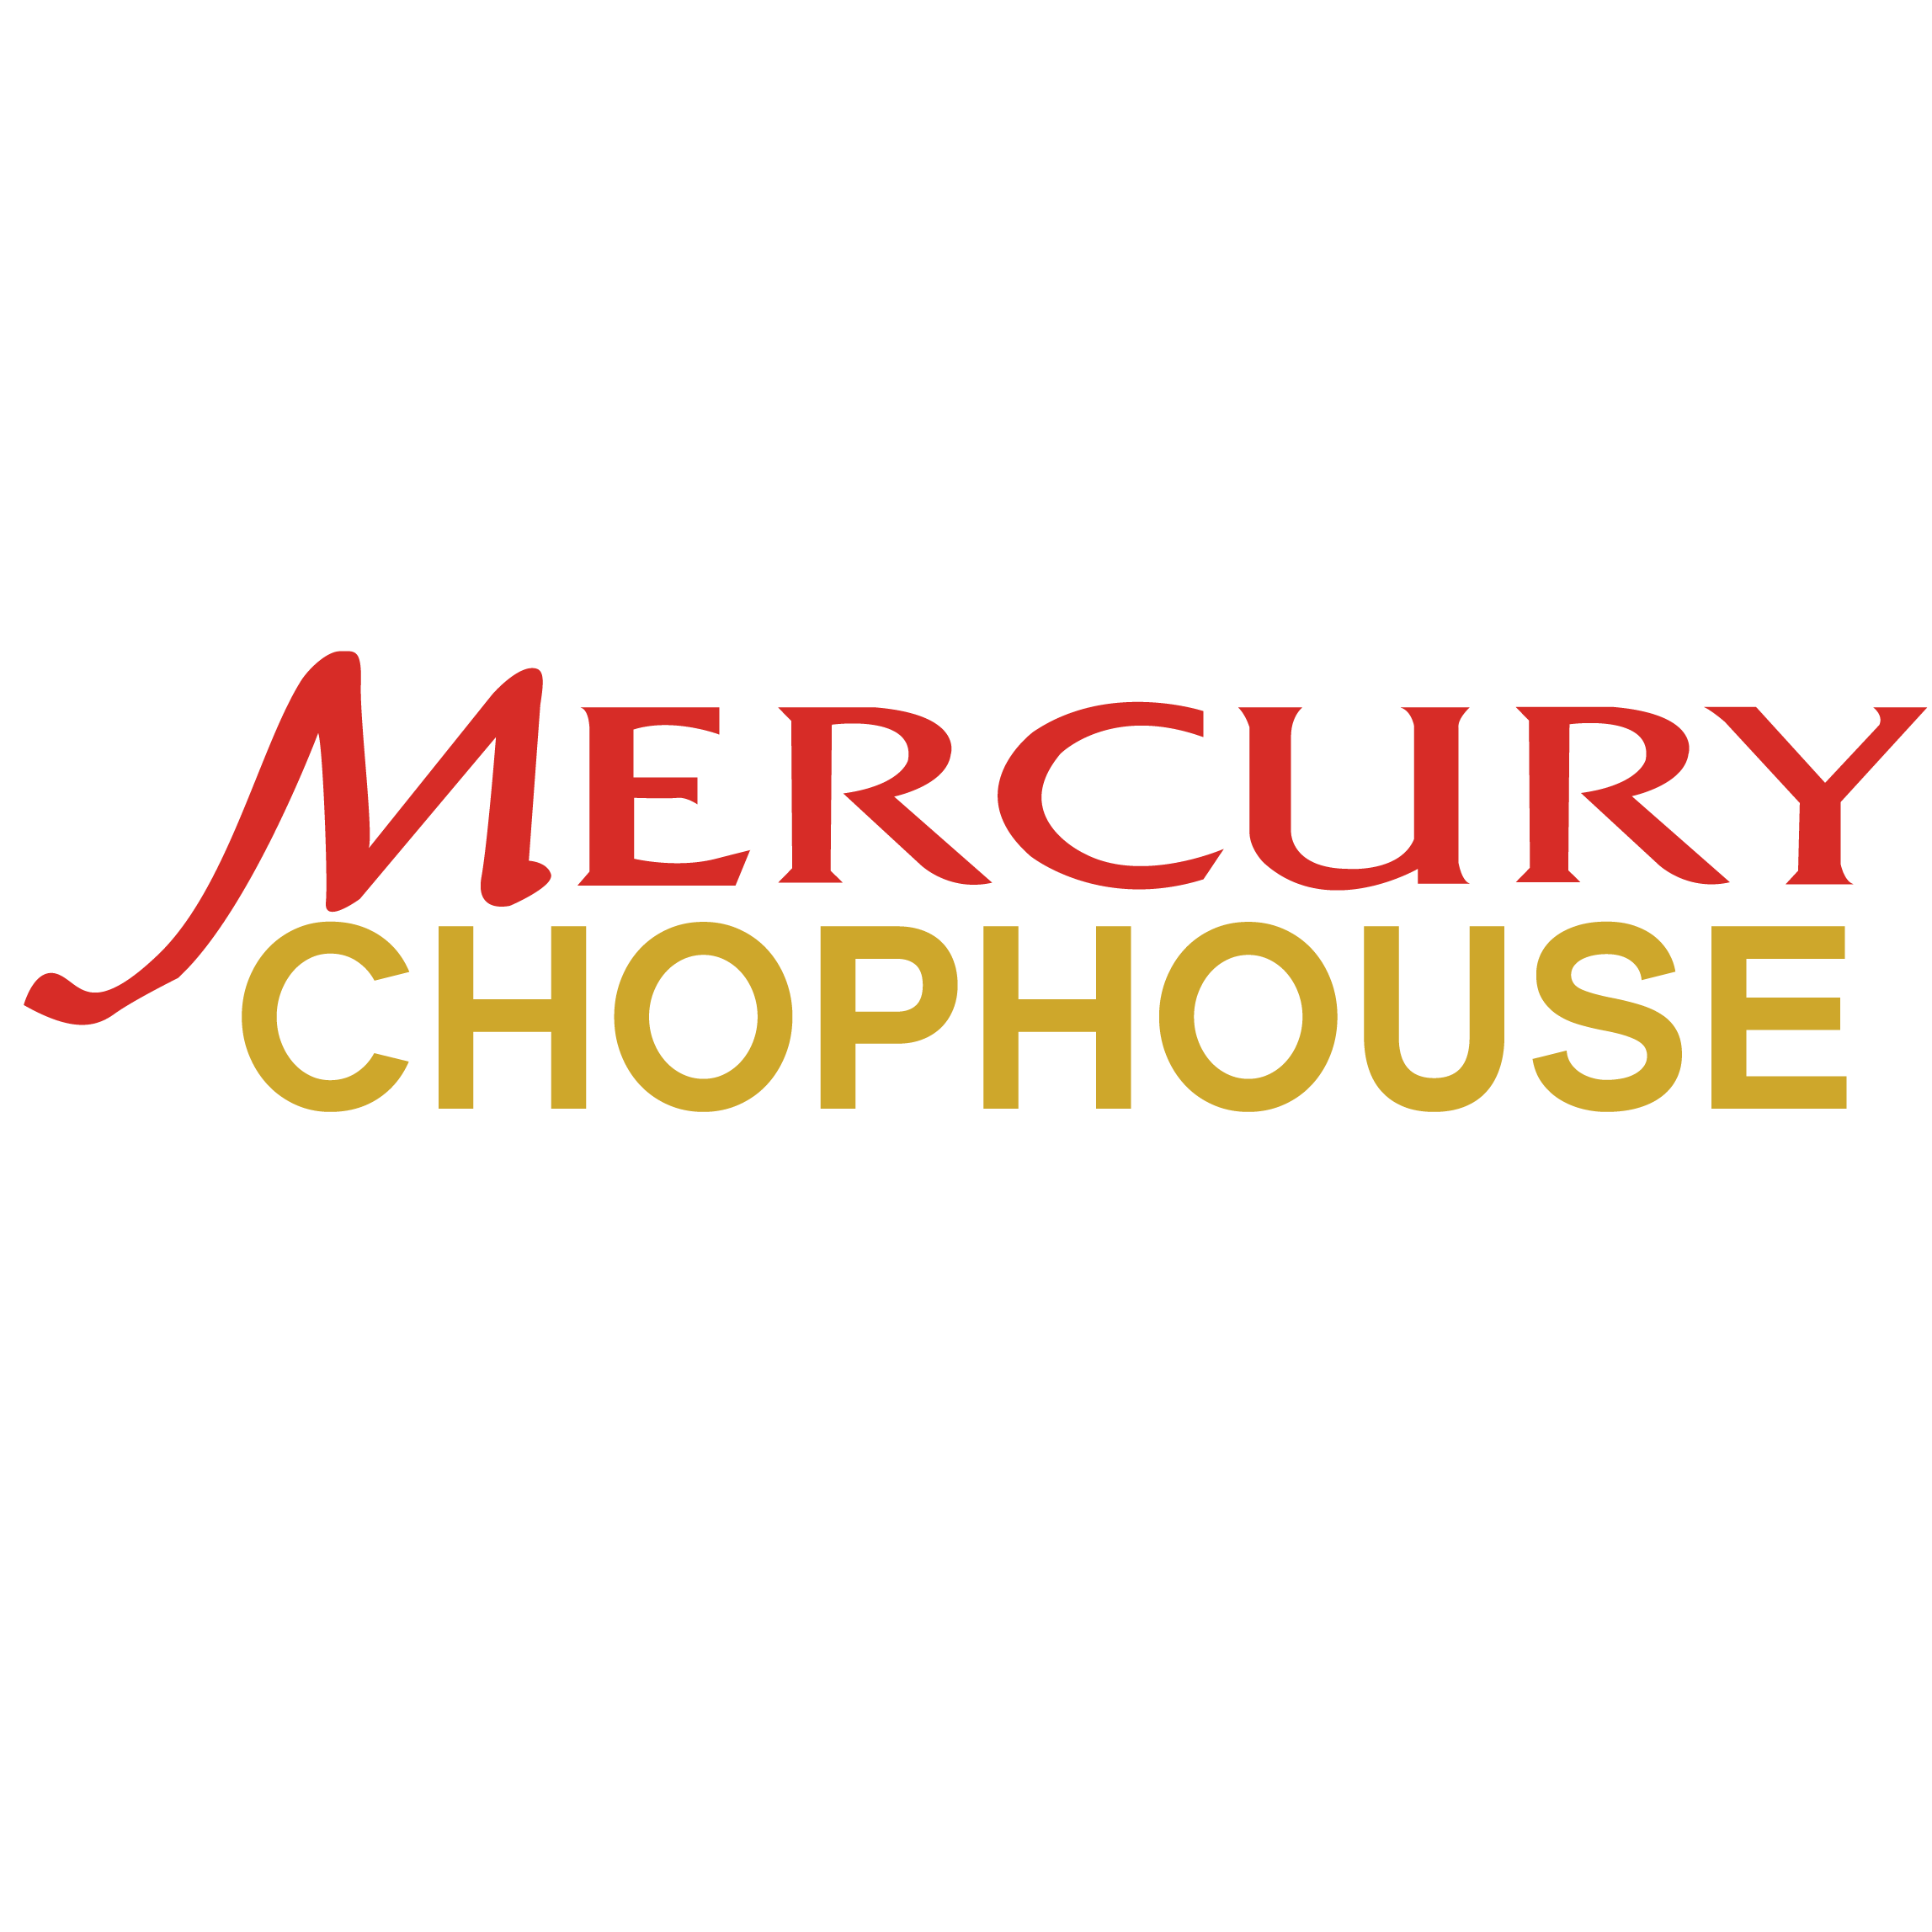 Mercury Chophouse - Arlington